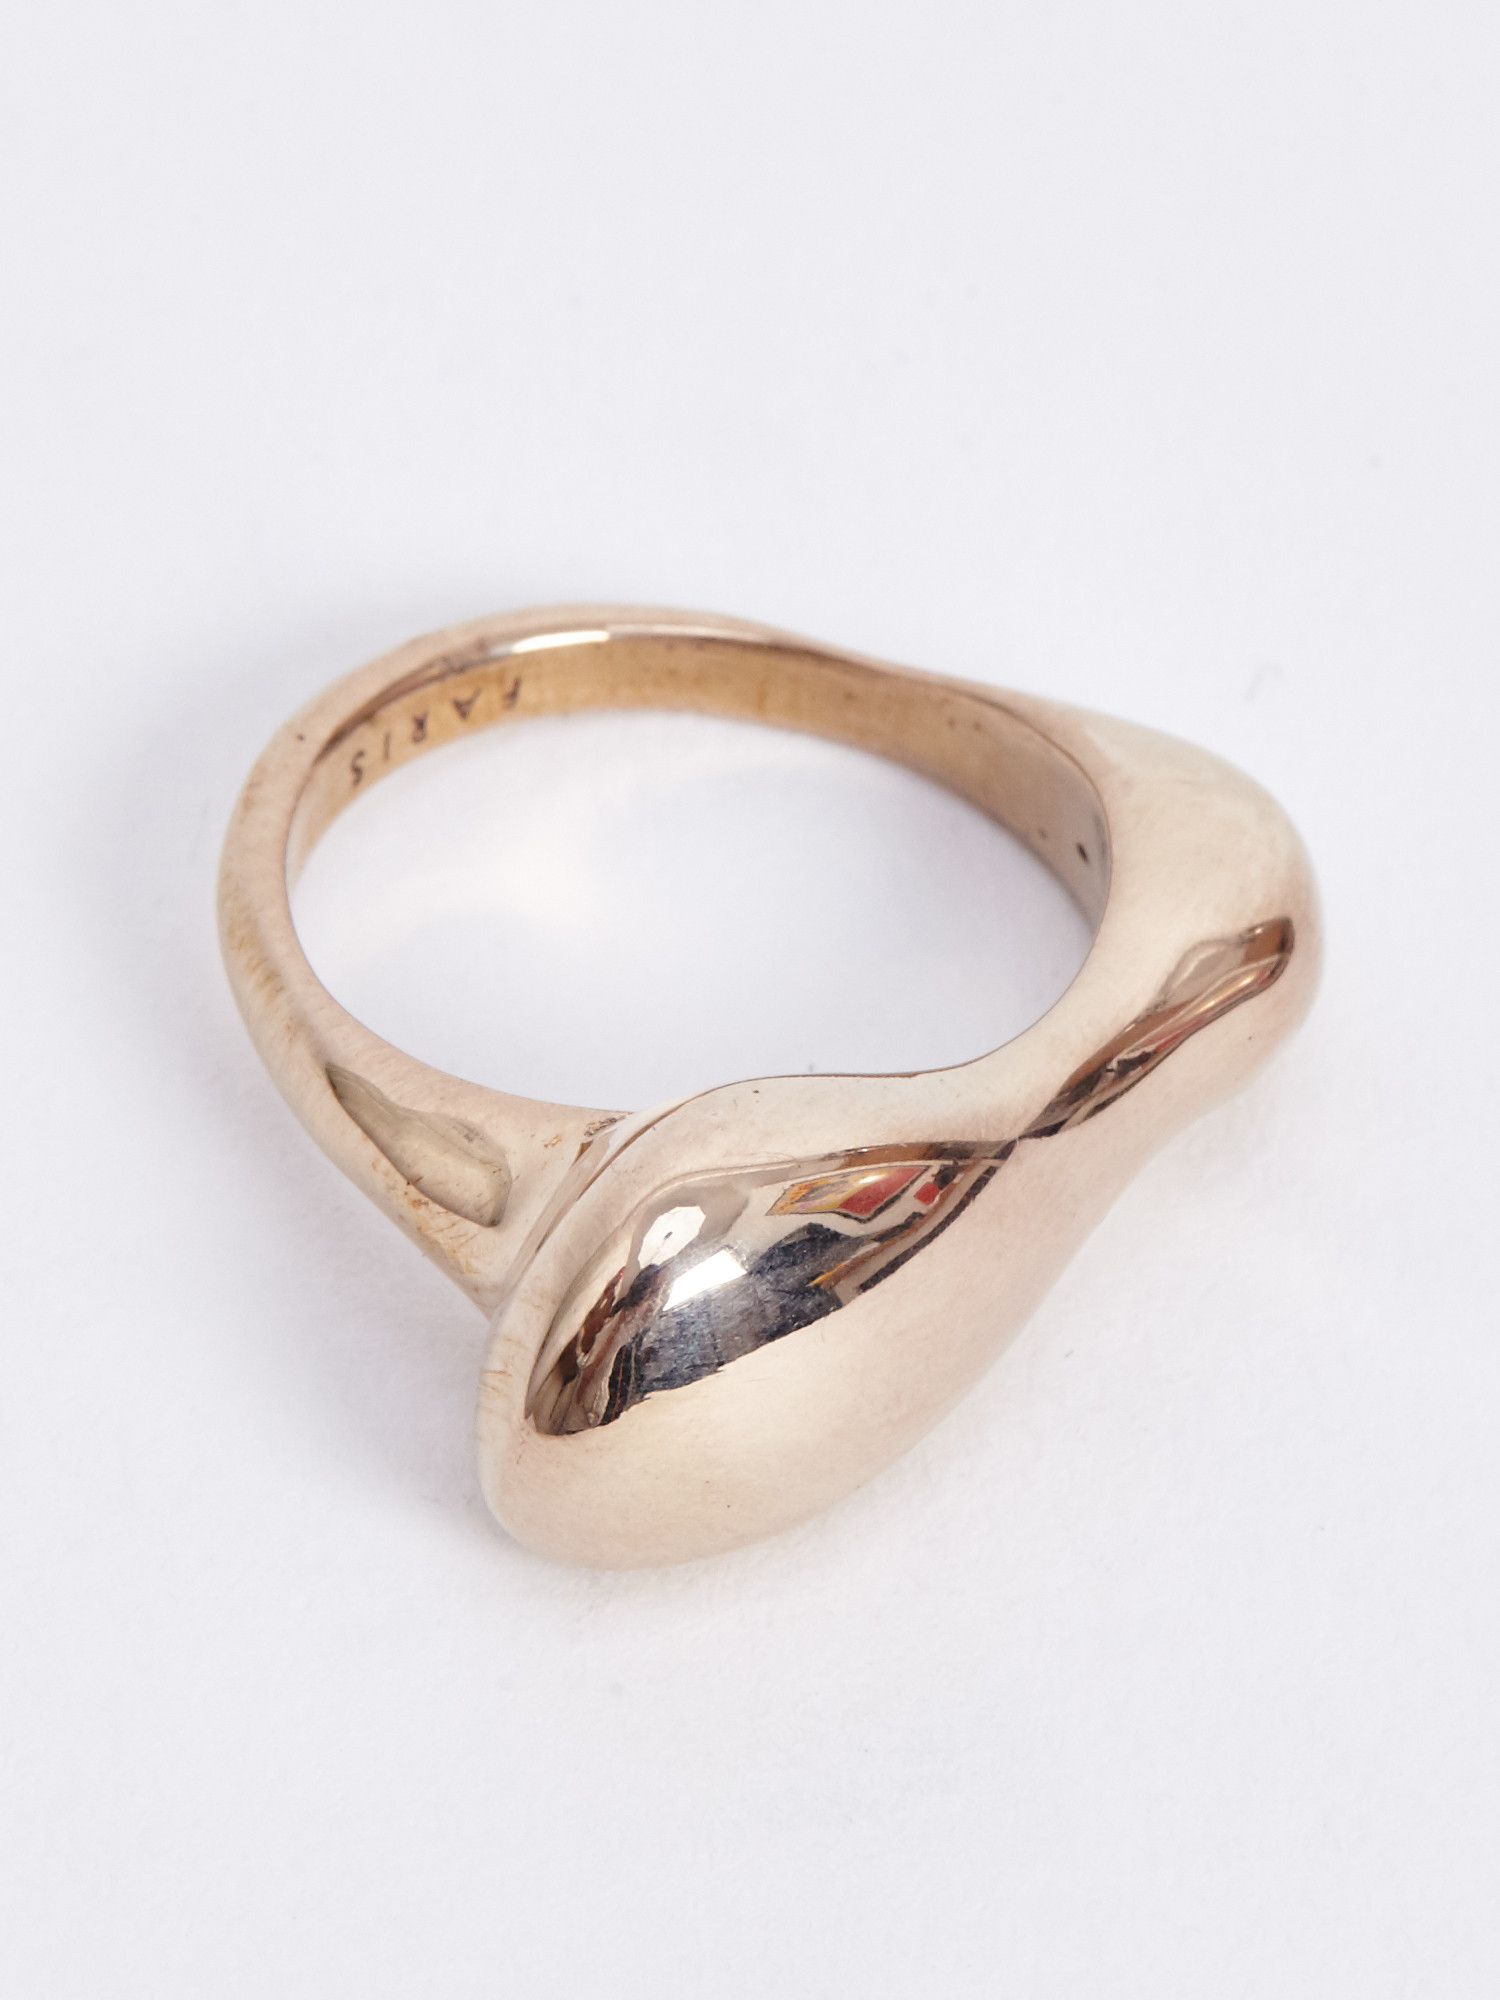 faris jewelry faris rest ring garmentory 5777